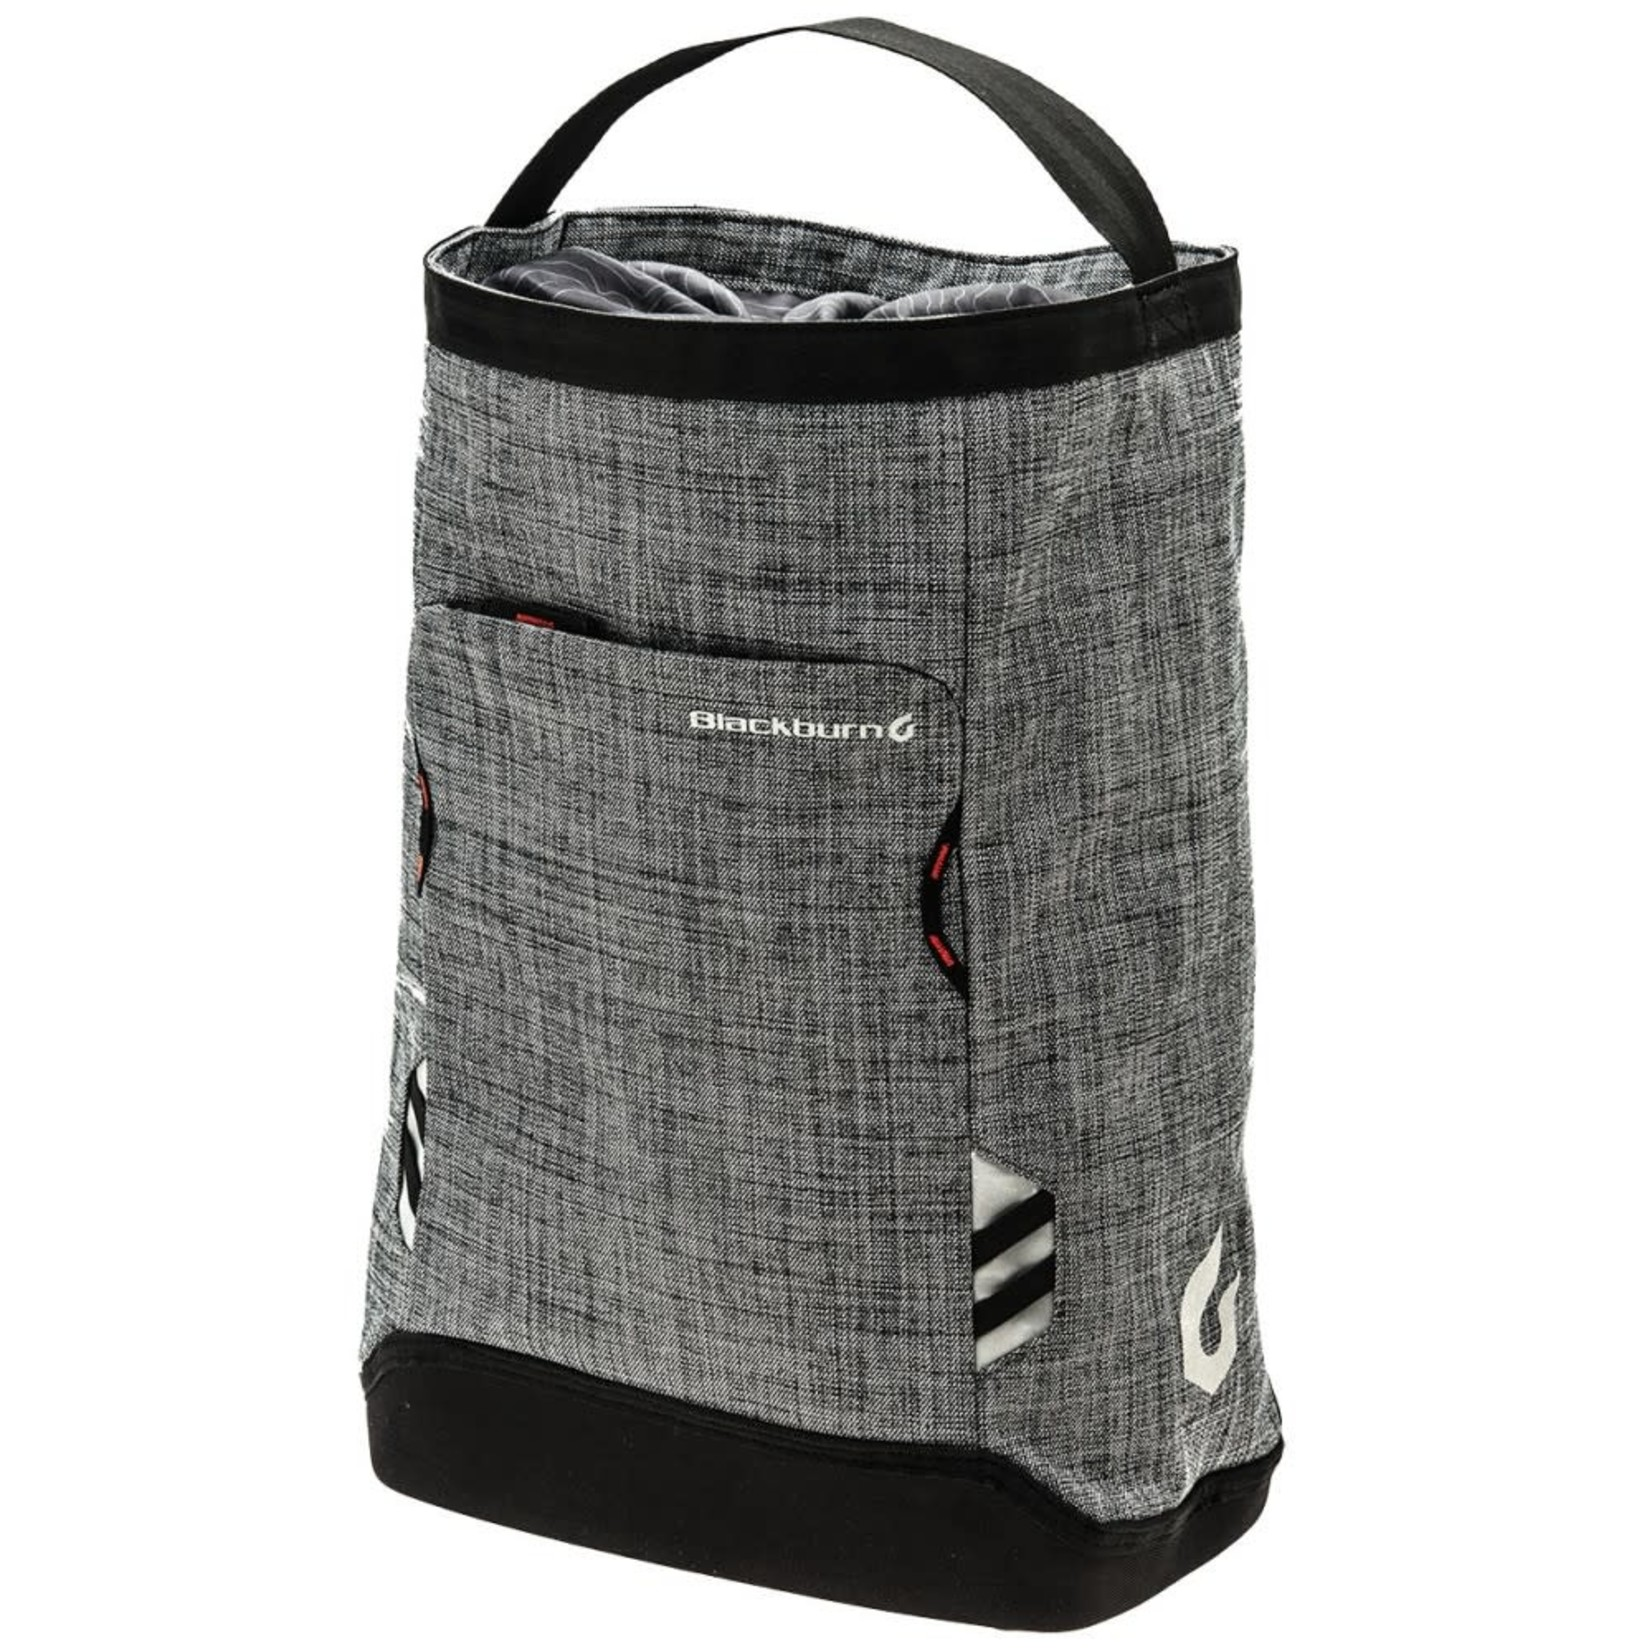 Blackburn Blackburn Central Shopper's Pannier, Charcoal